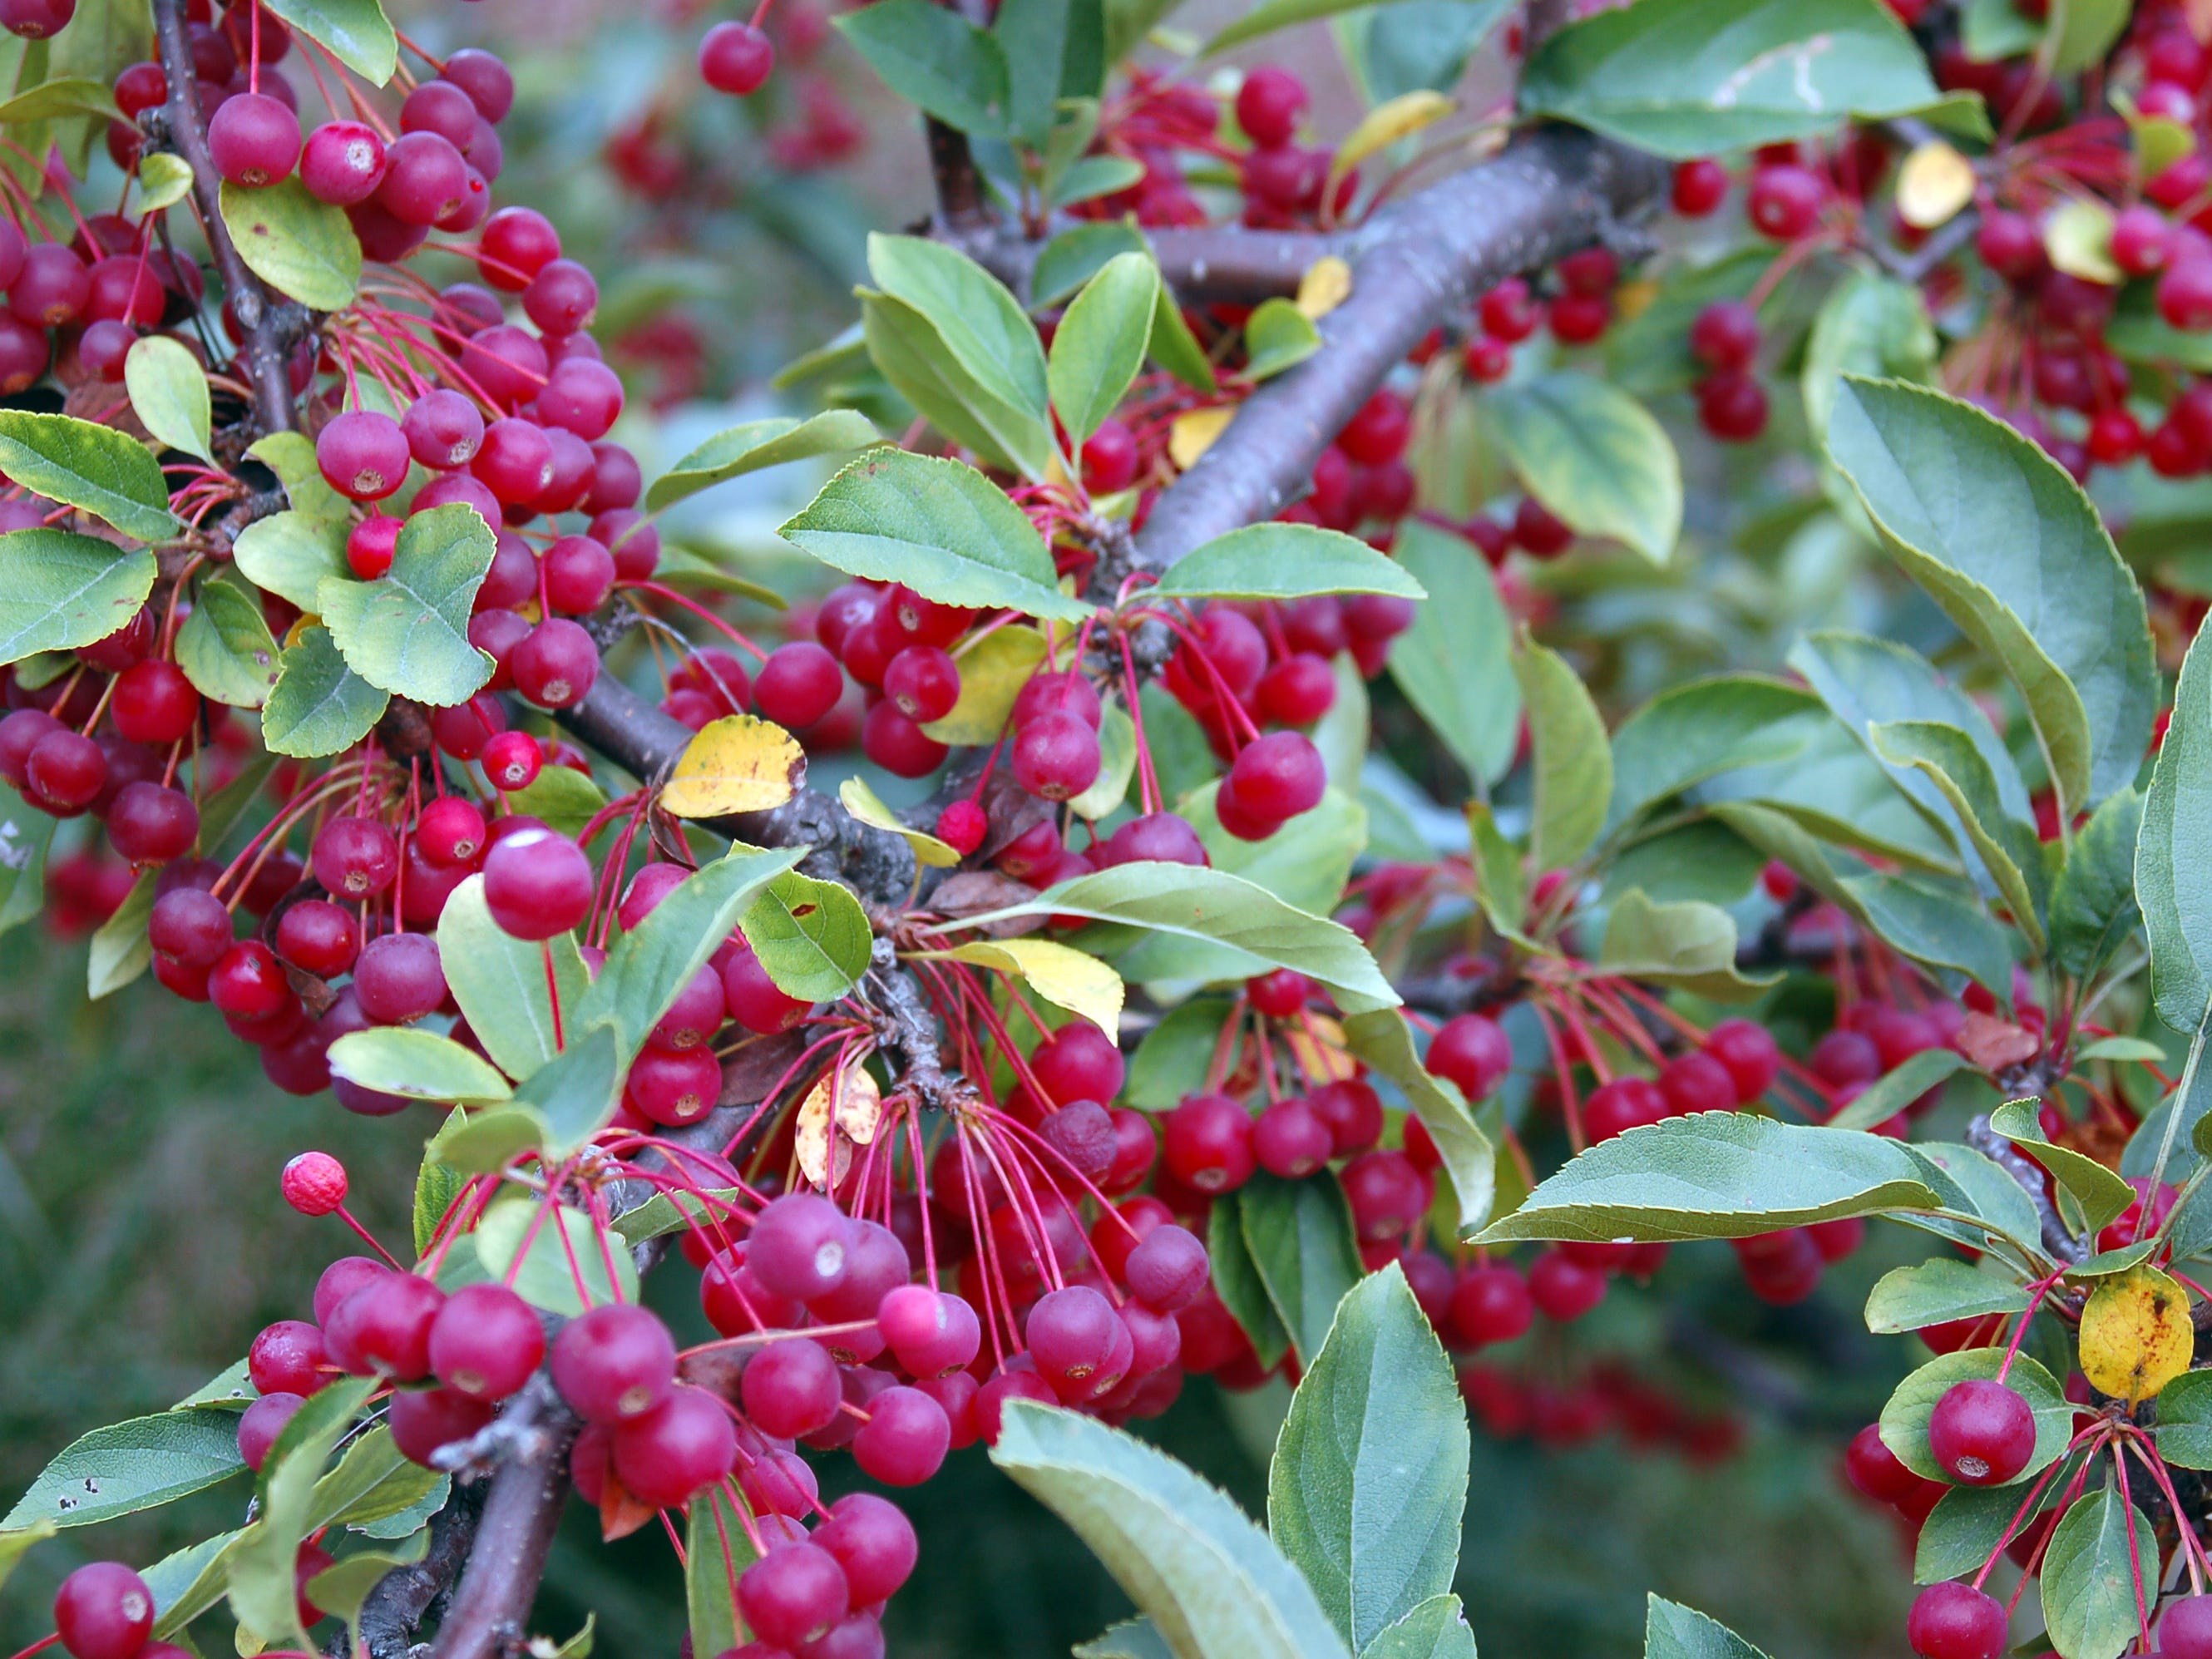 The Tina crabapple is a dwarf tree that cevelops small, red, persistent fruit.